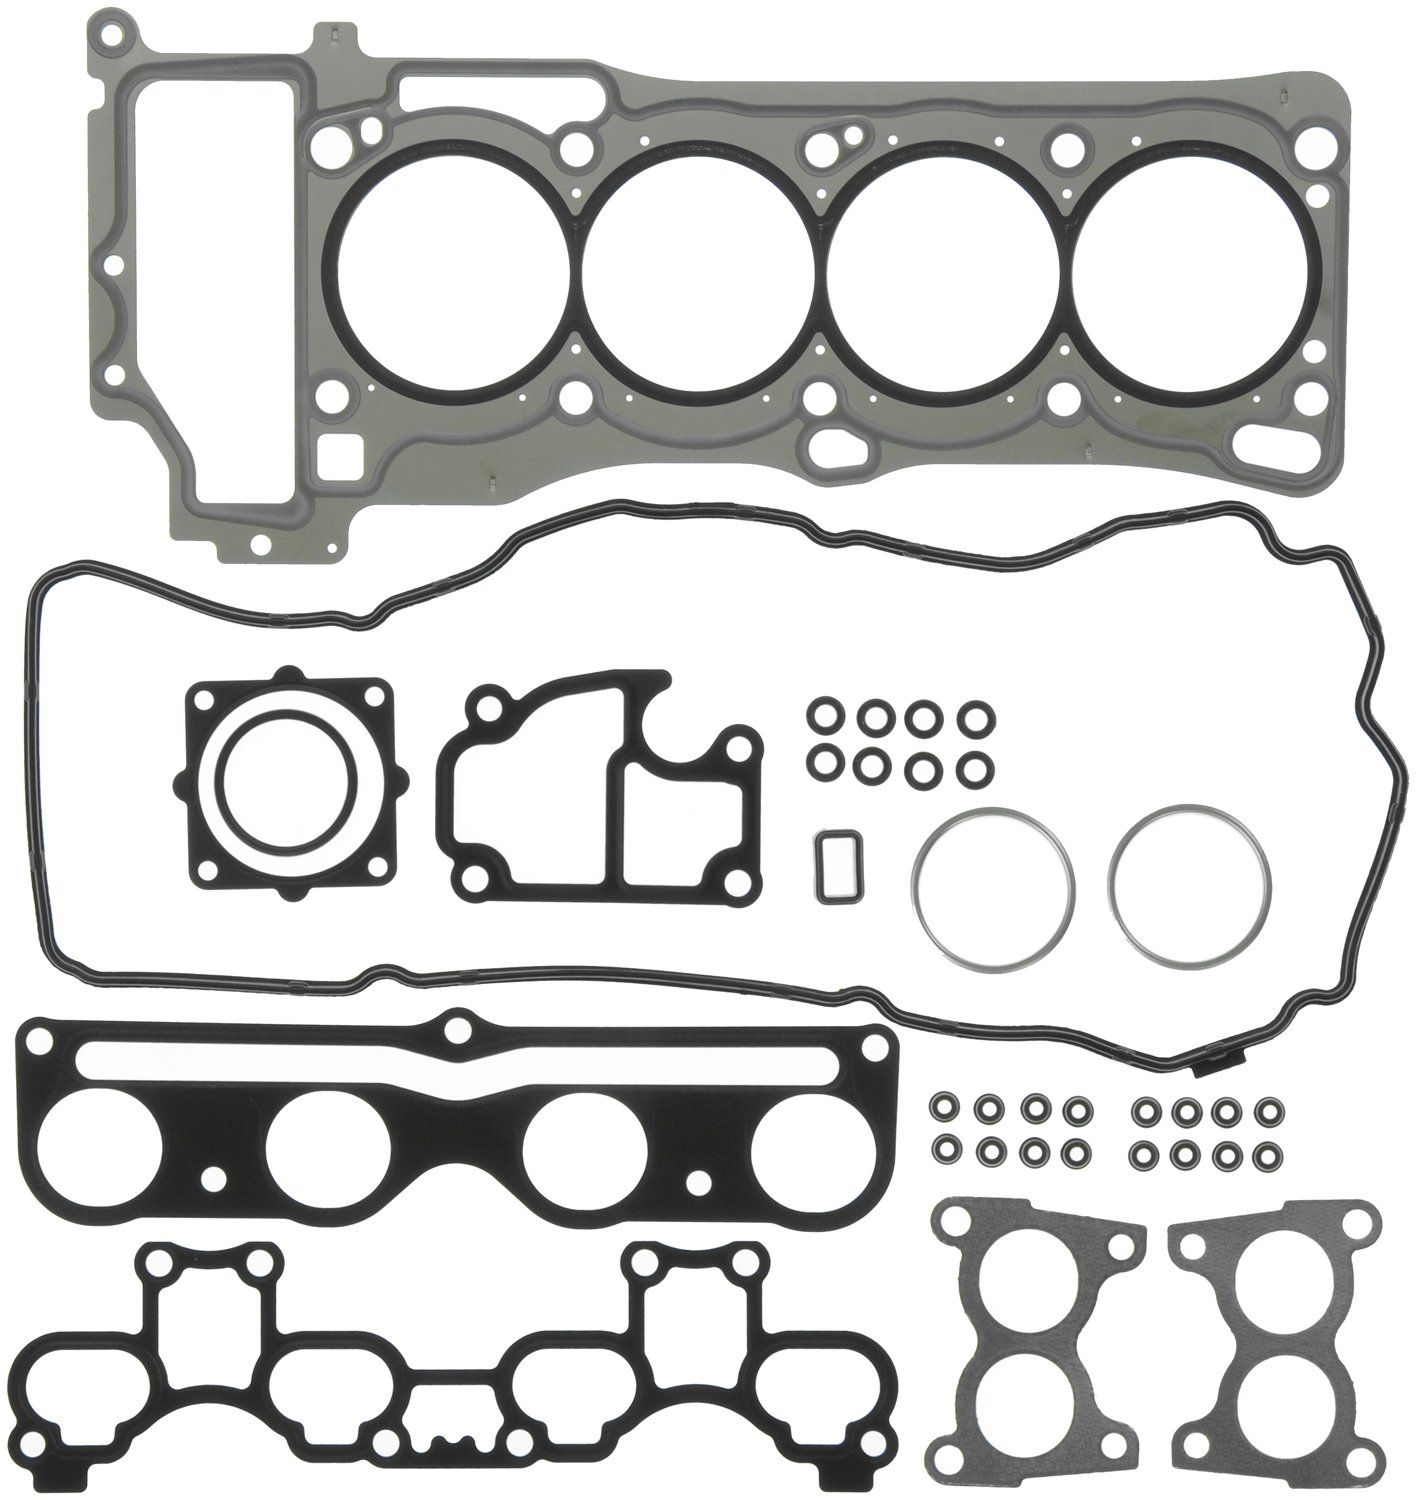 Nissan Sentra Engine Cylinder Head Gasket Set Replacement Beck Diagram Of 1988 Stanza 2004 4 Cyl 18l Victor Gaskets Hs54471a